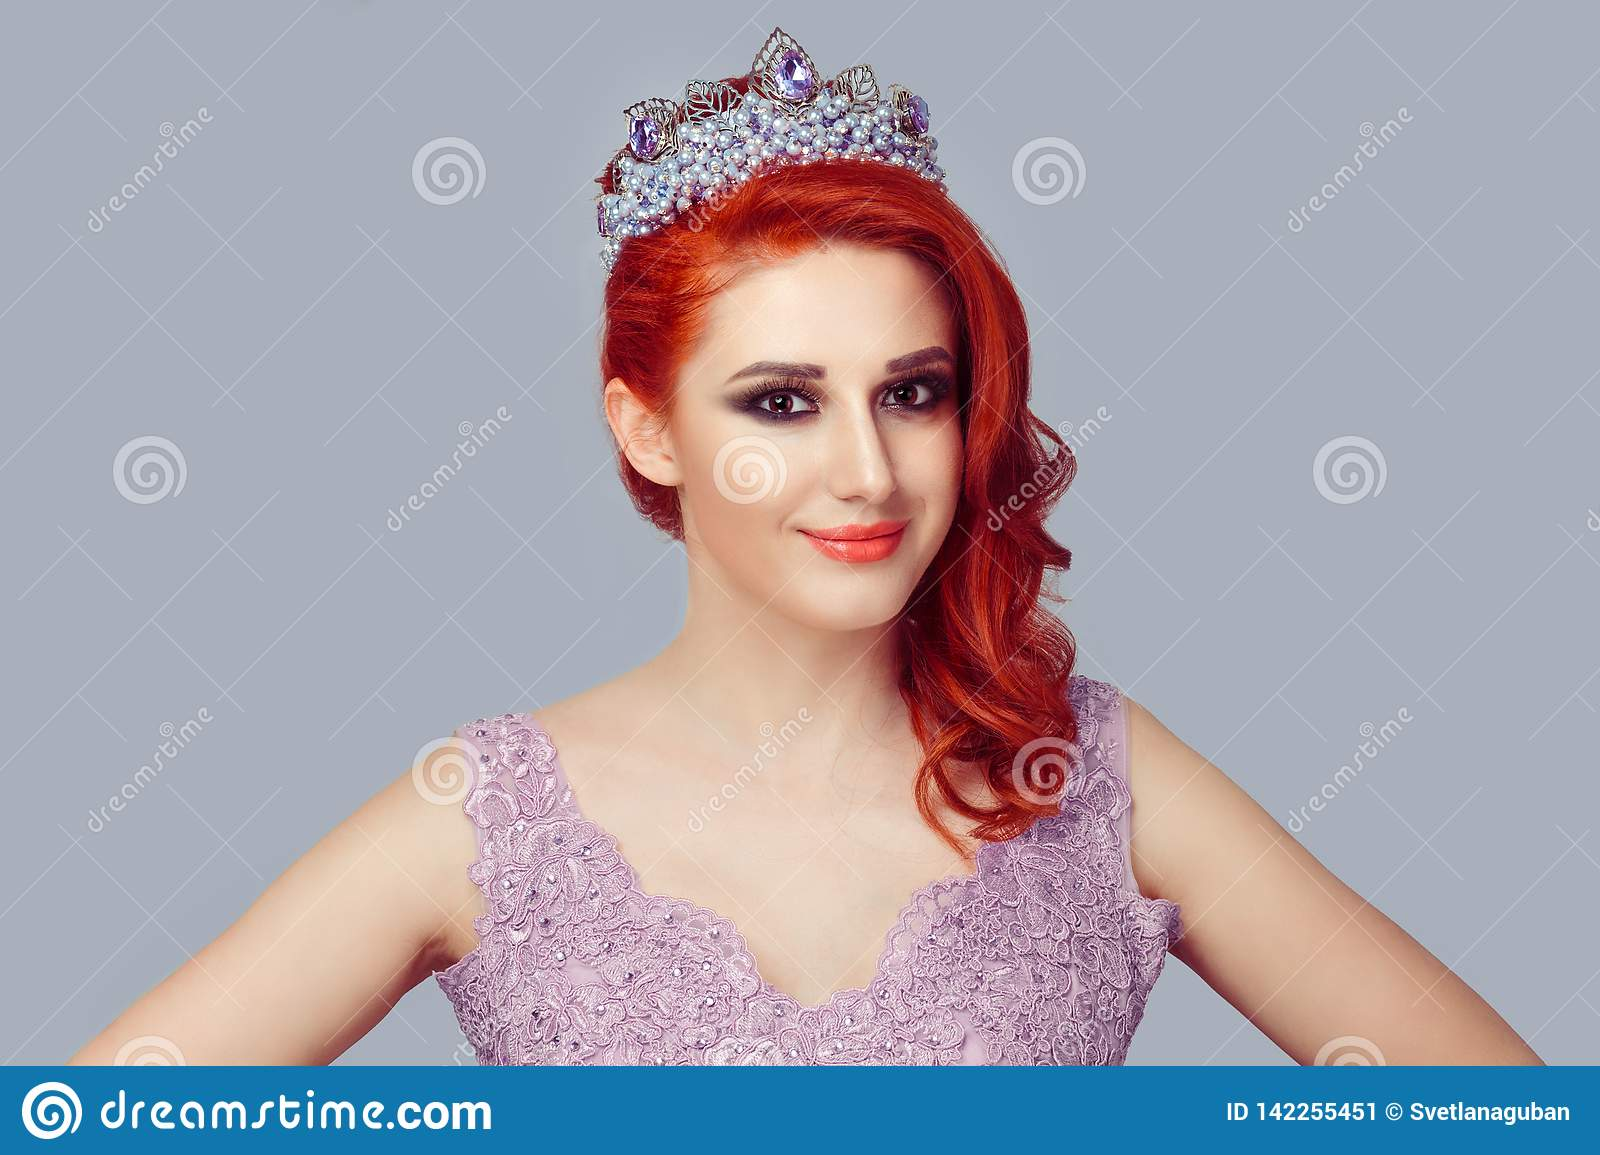 Redhead woman in crown with purple pearls and crystals in violet color lace dress